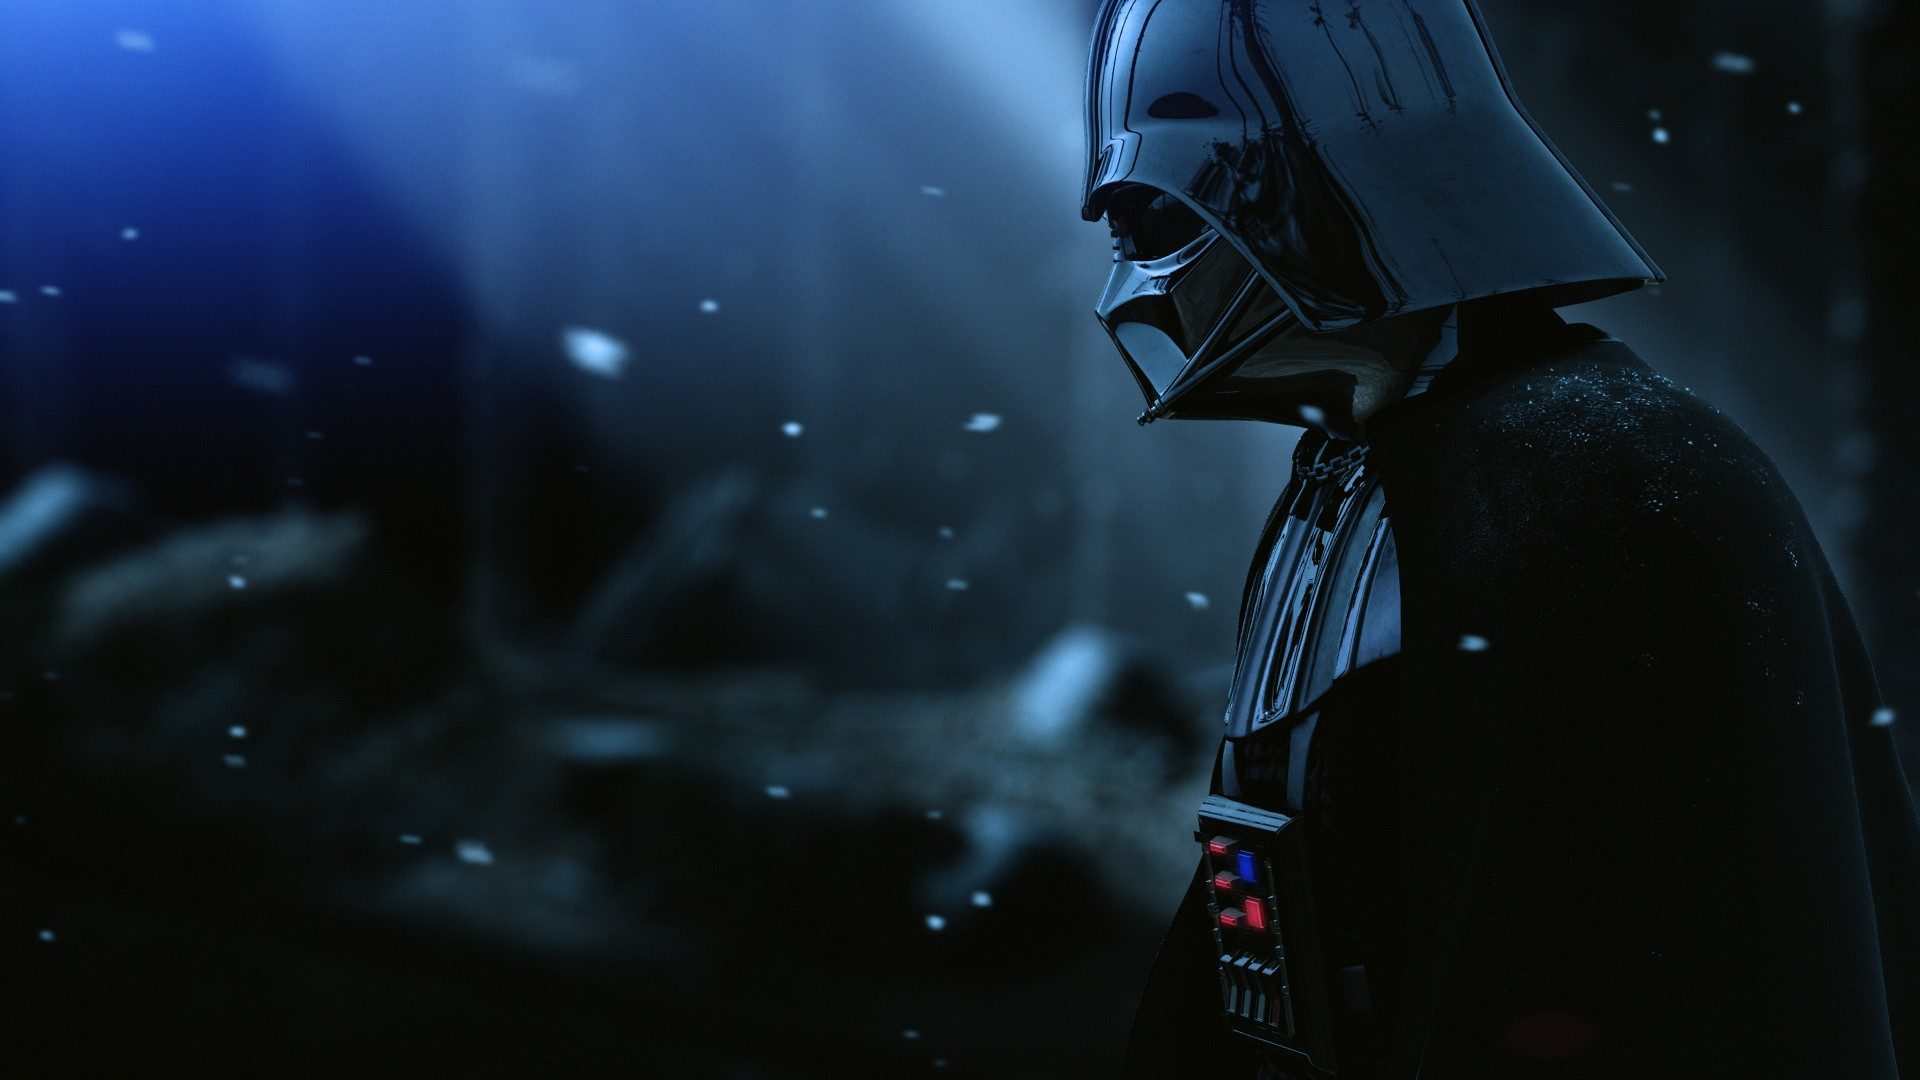 Star Wars Wallpapers Group (92+)